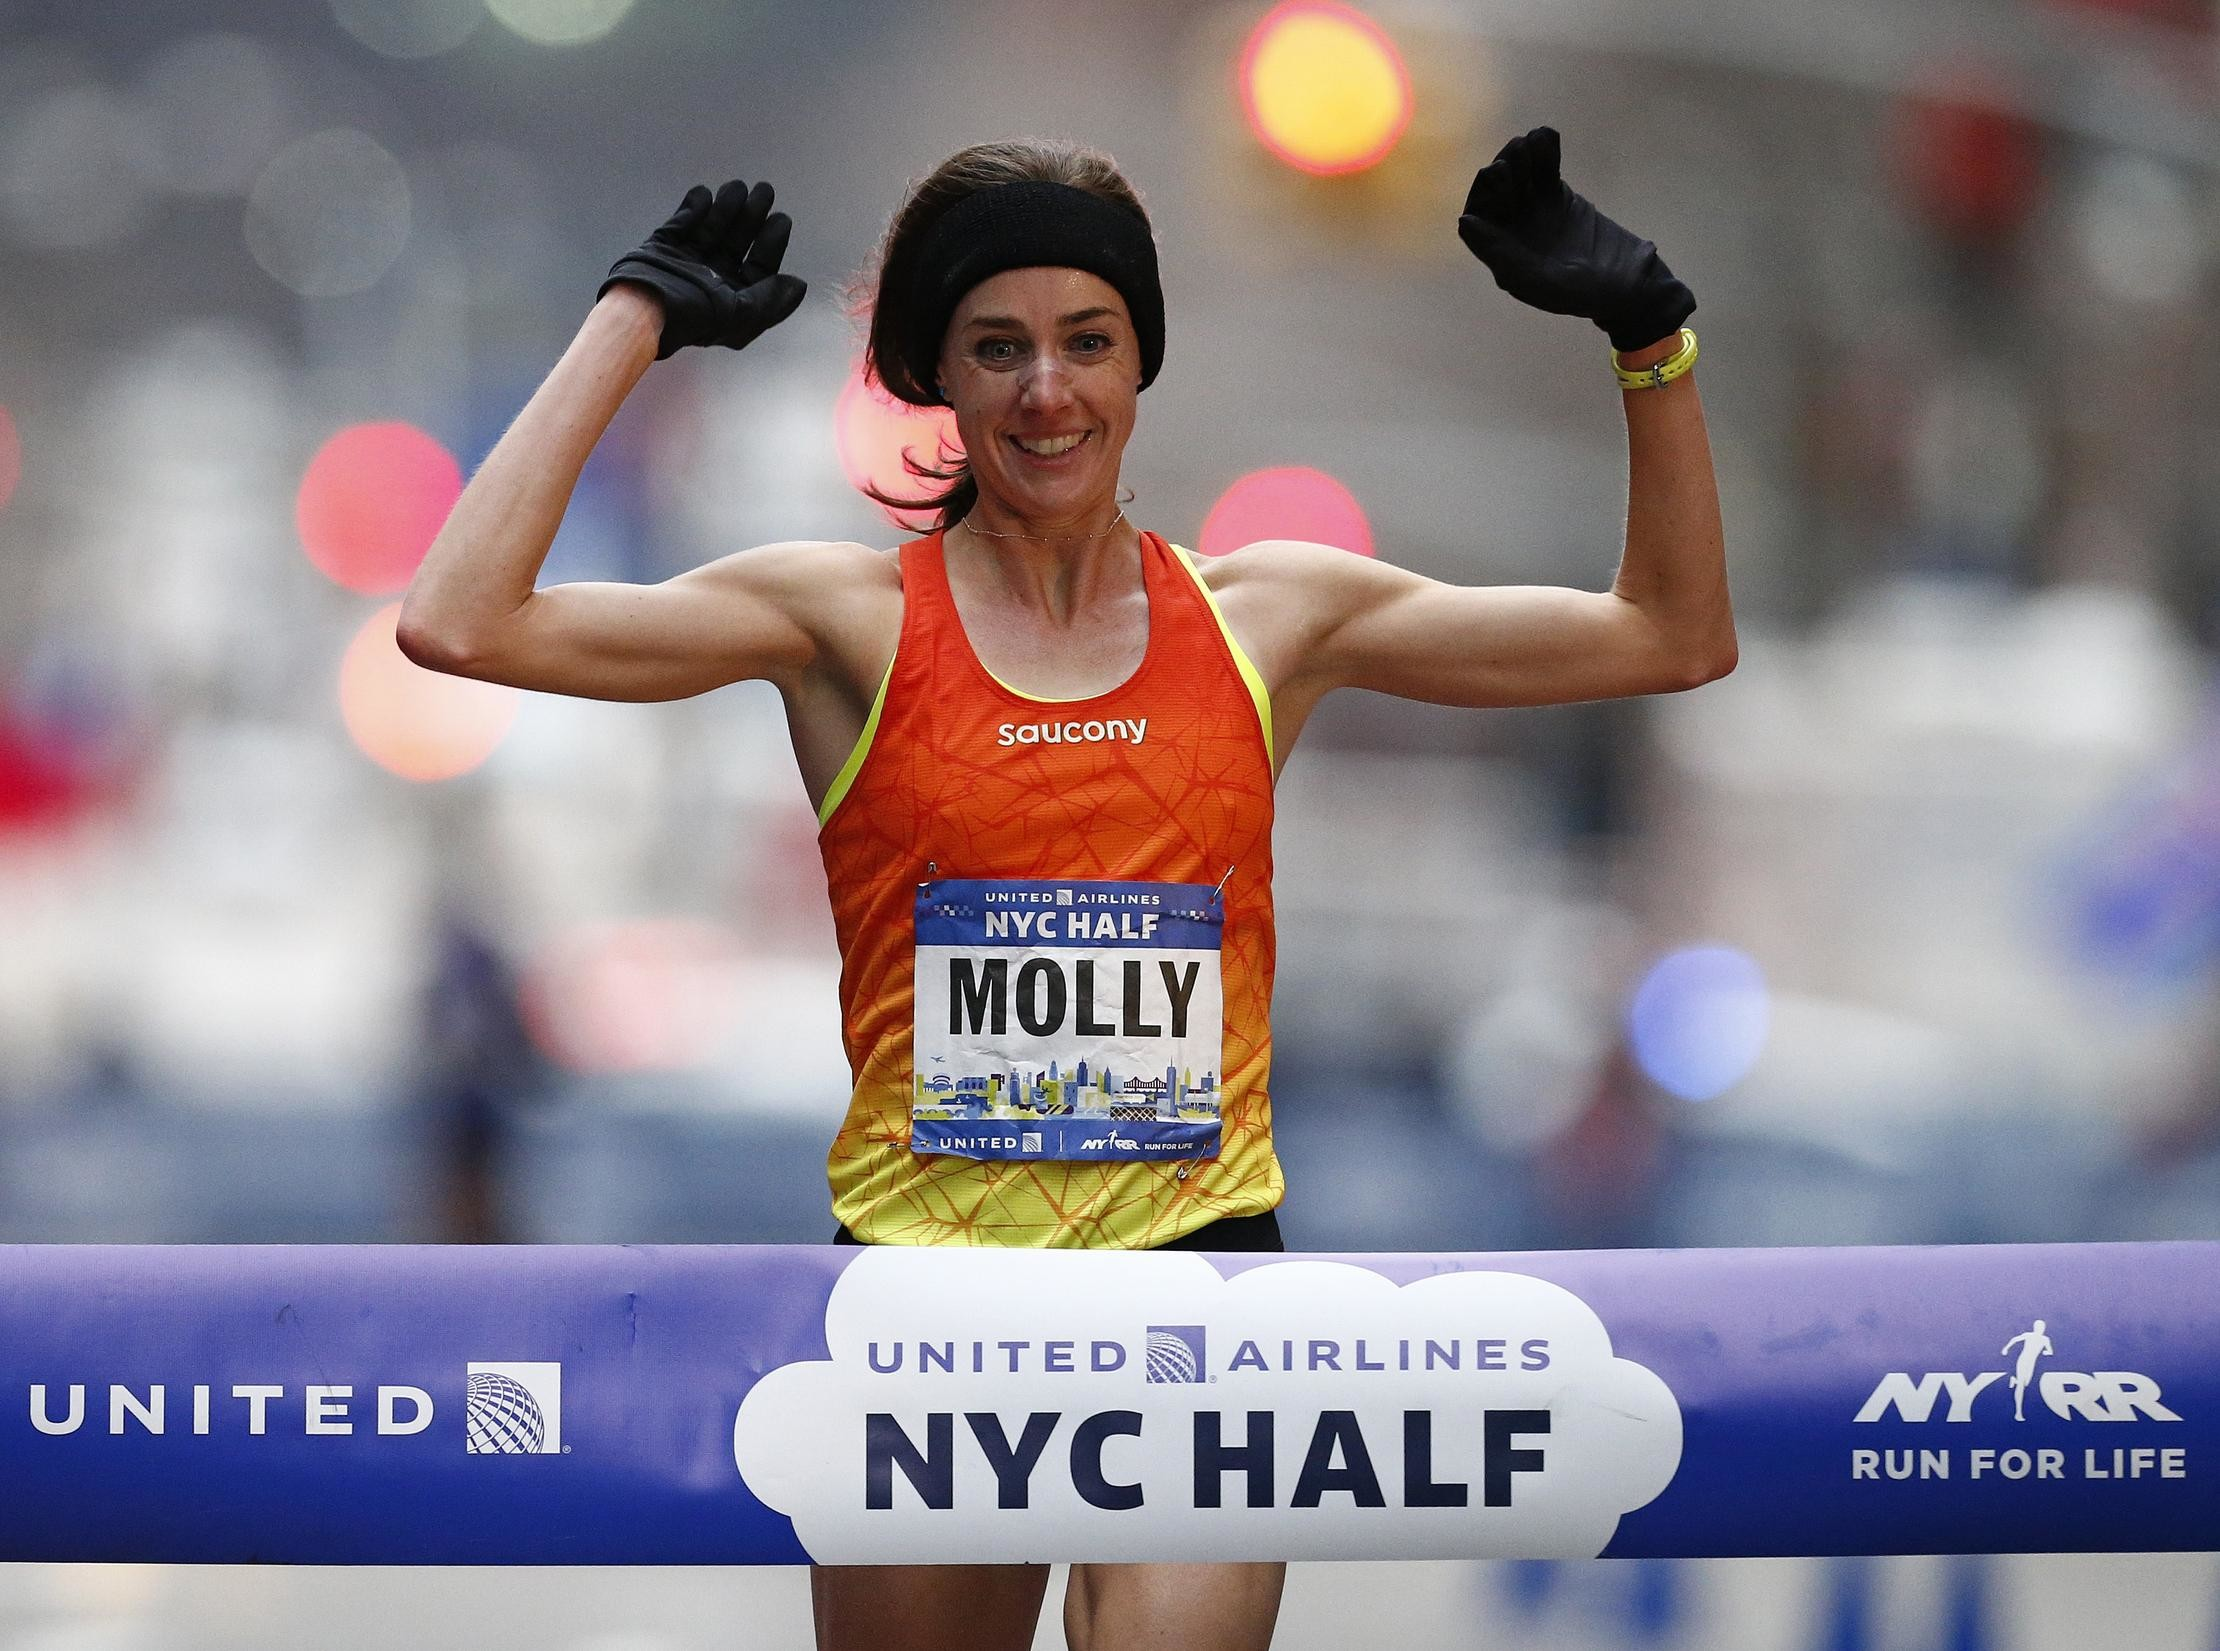 I just think if you could pick a day and place to win, it would be Patriot's Day in Boston says Molly Huddle